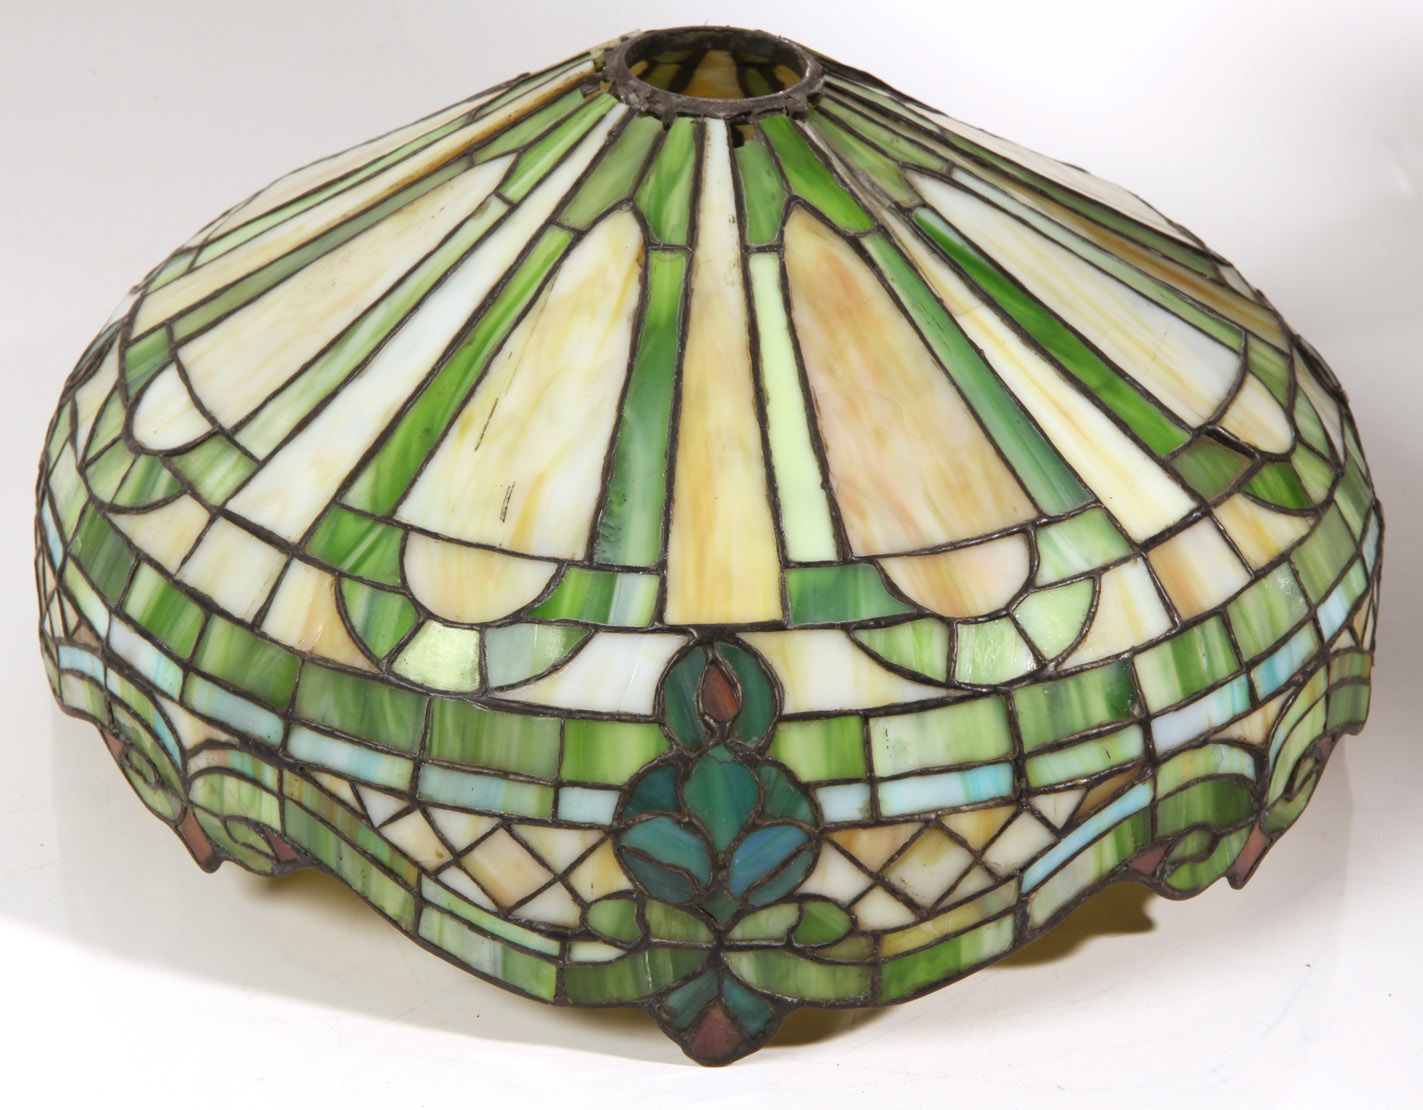 antique leaded glass lamp shade 14 1 2 shade approx 7 high dam. Black Bedroom Furniture Sets. Home Design Ideas